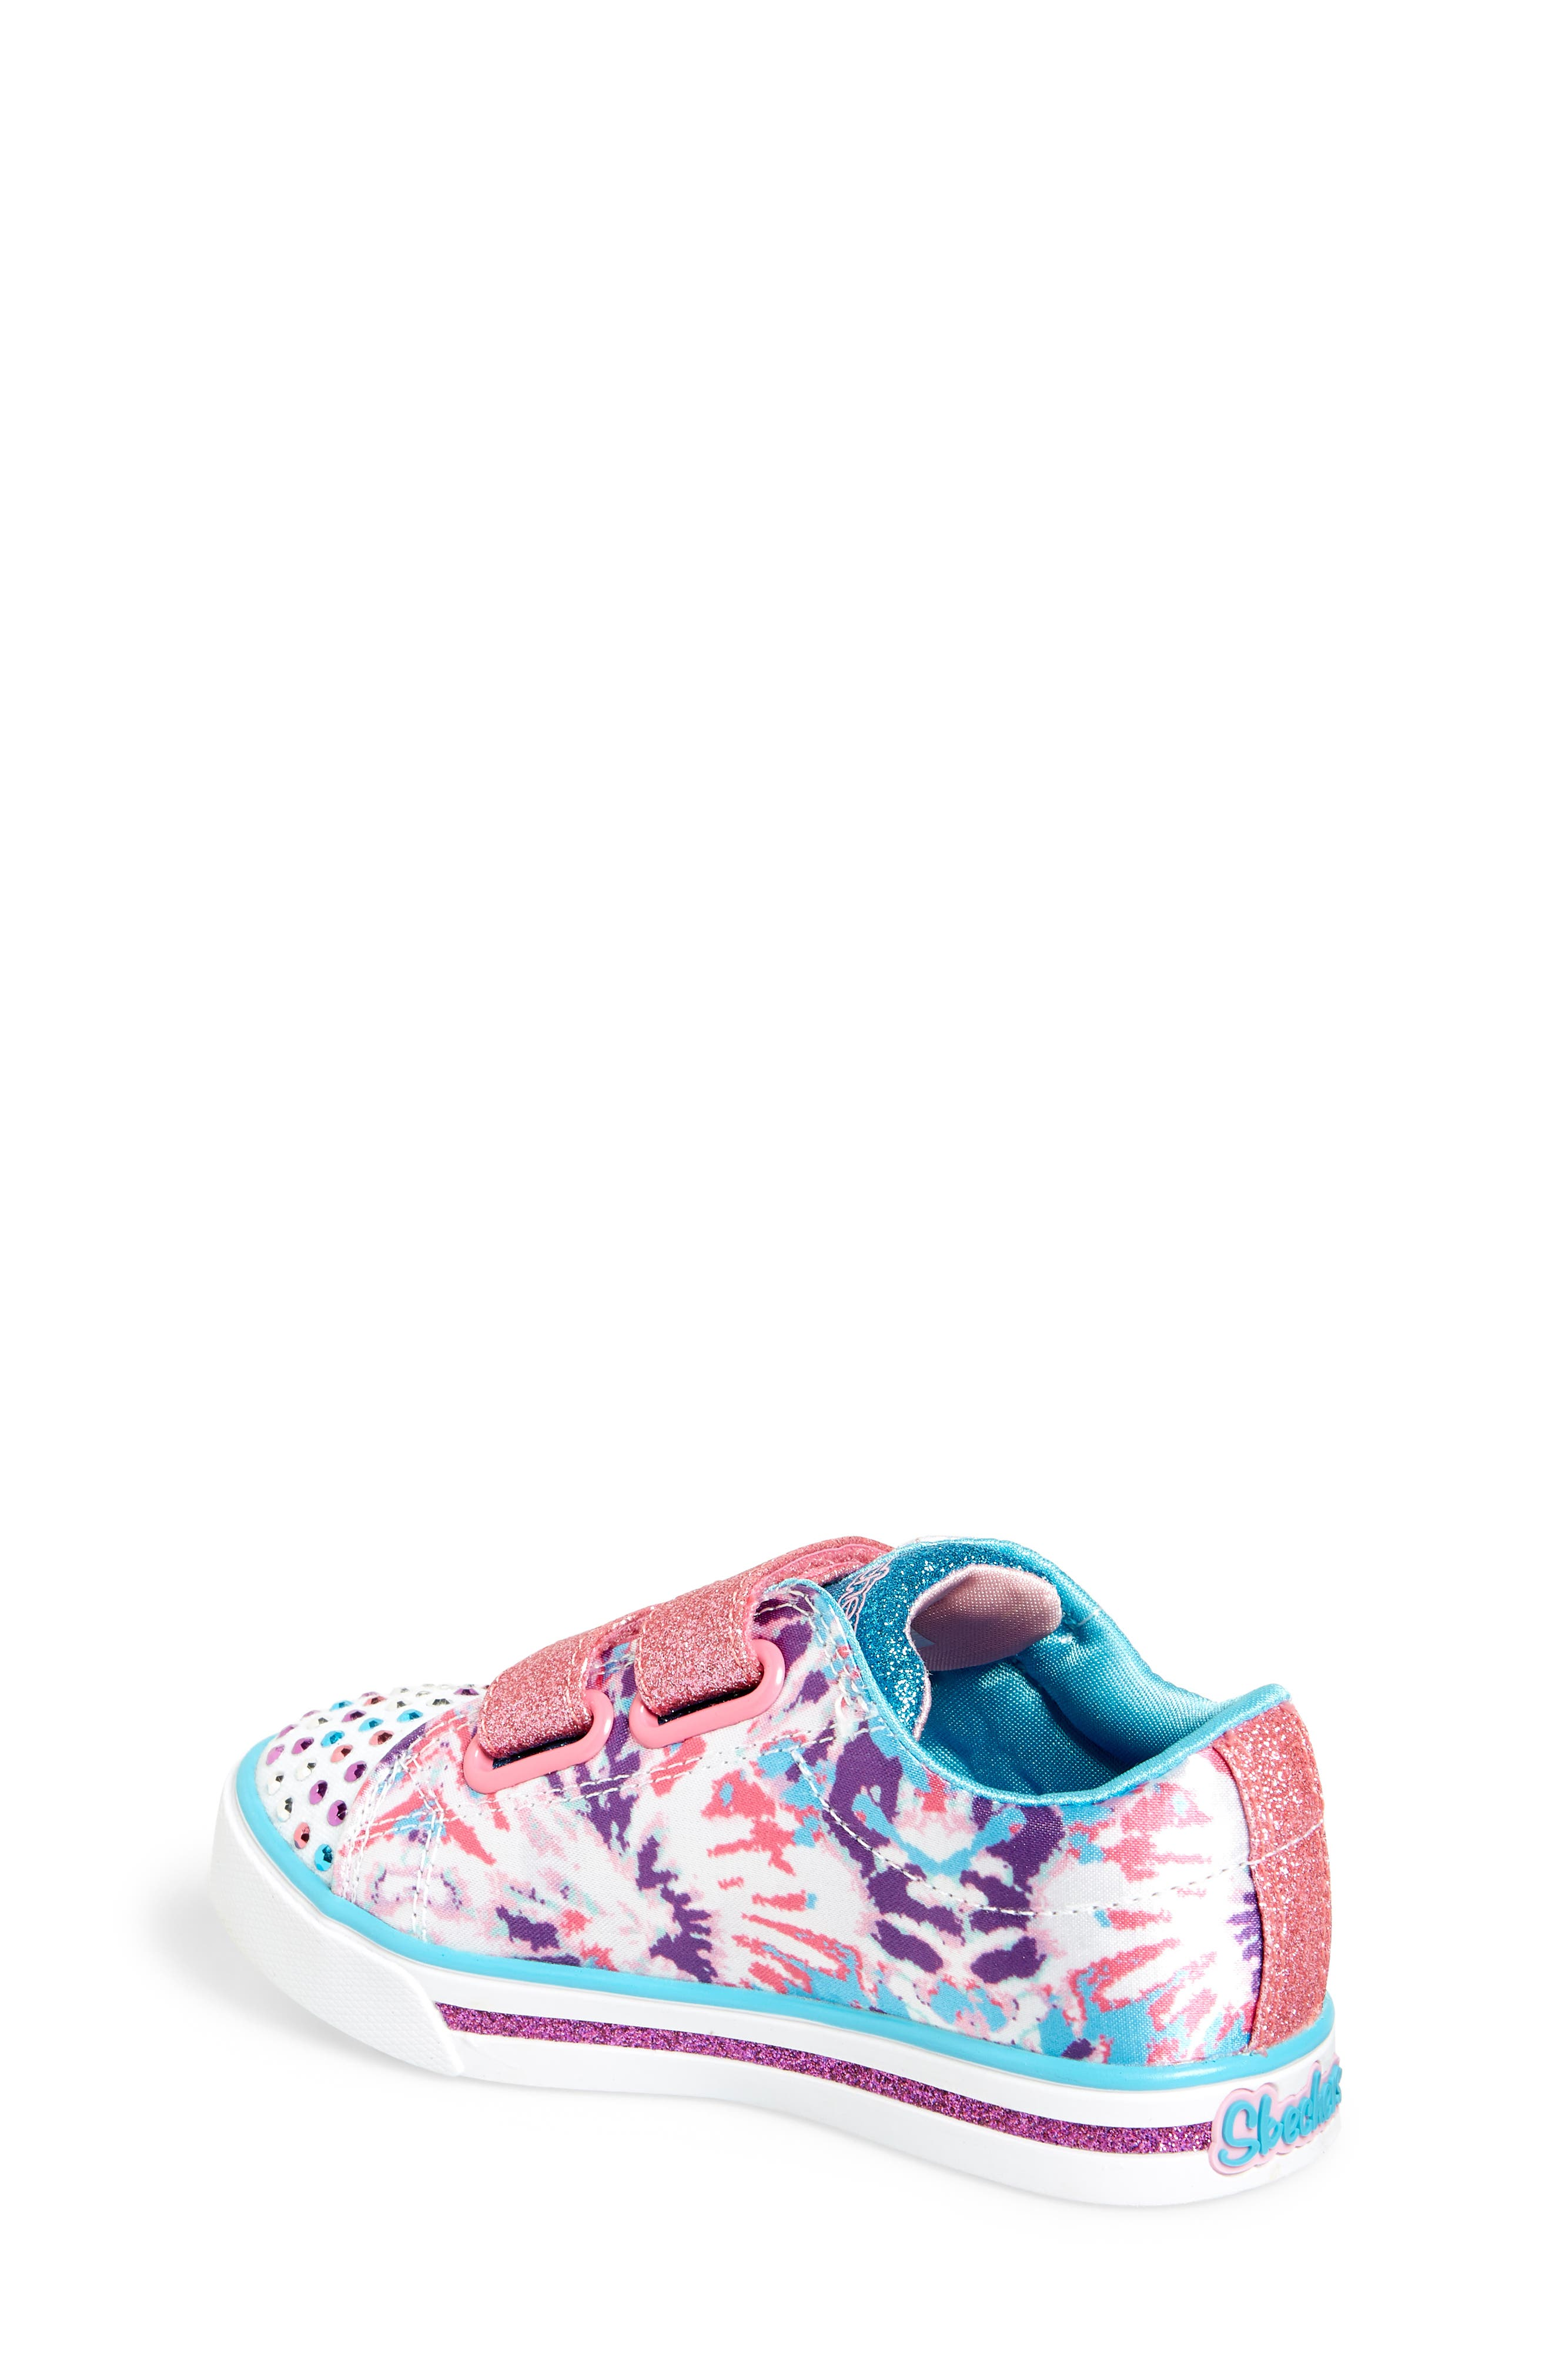 SKECHERS,                             Sparkle Glitz Lil Dazzle Sneaker,                             Alternate thumbnail 2, color,                             199